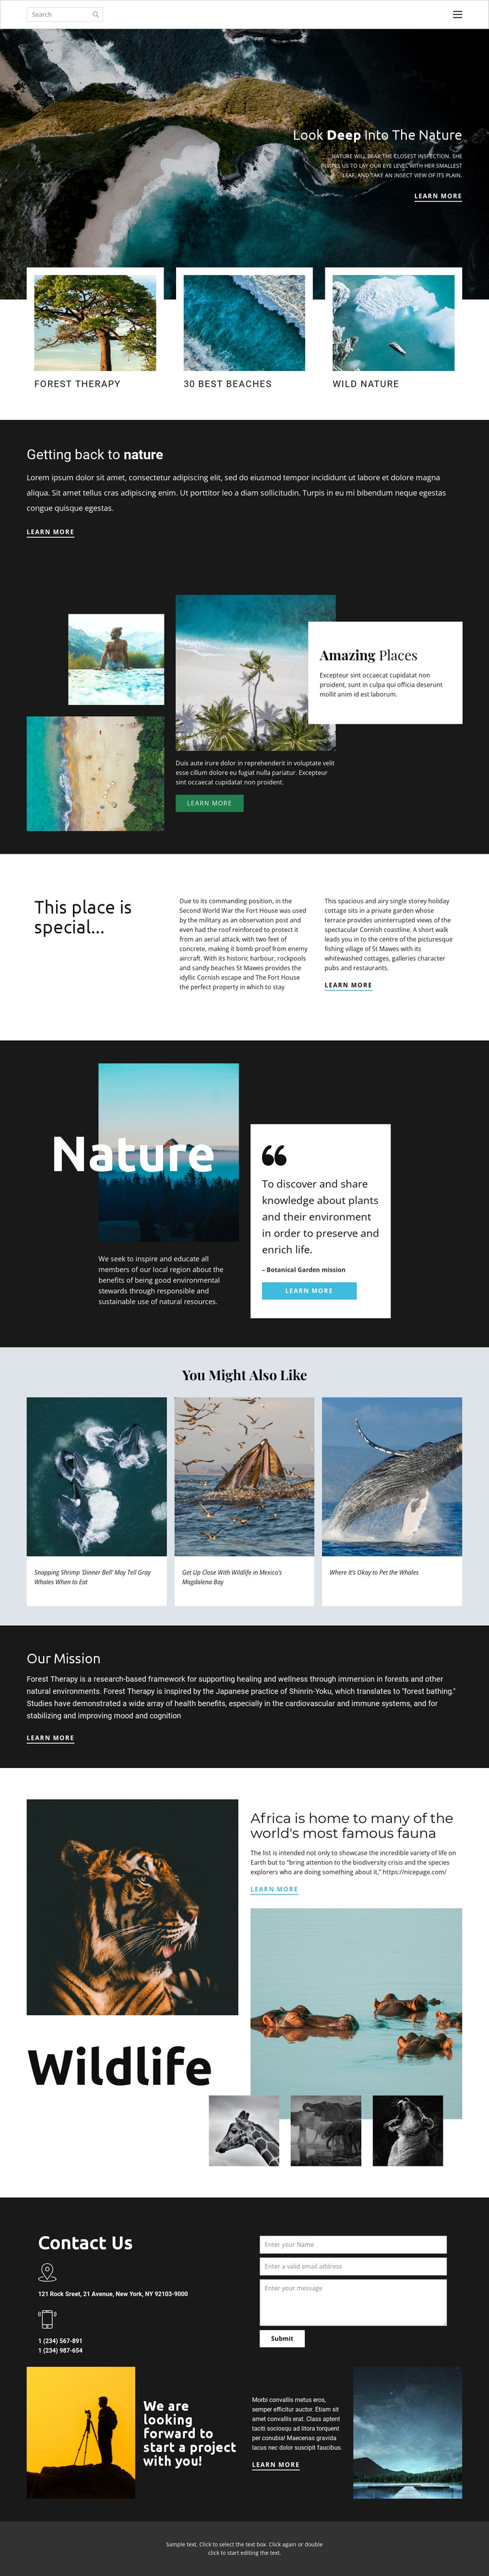 Exploring wildlife and nature Website Builder Software